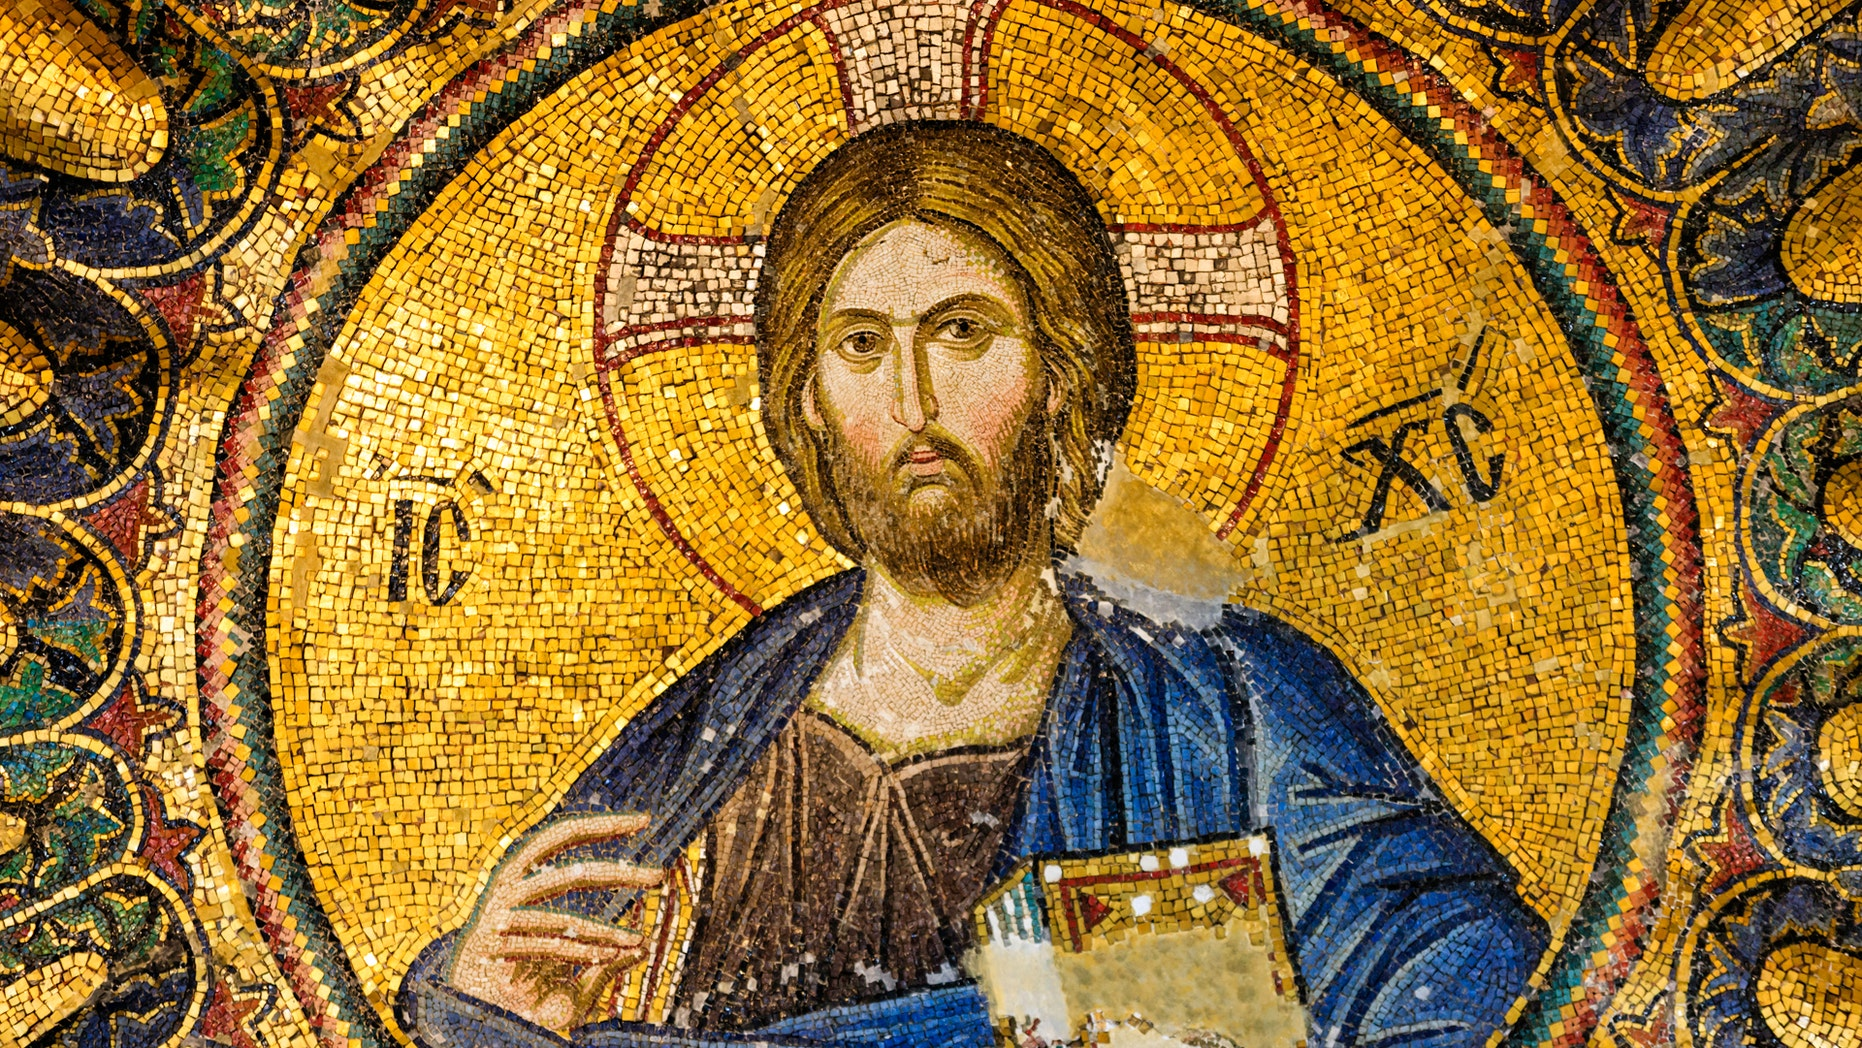 File photo - 13th century mosaic of Jesus Christ in the church of Hagia Sophia in Istanbul, Turkey (iStock)